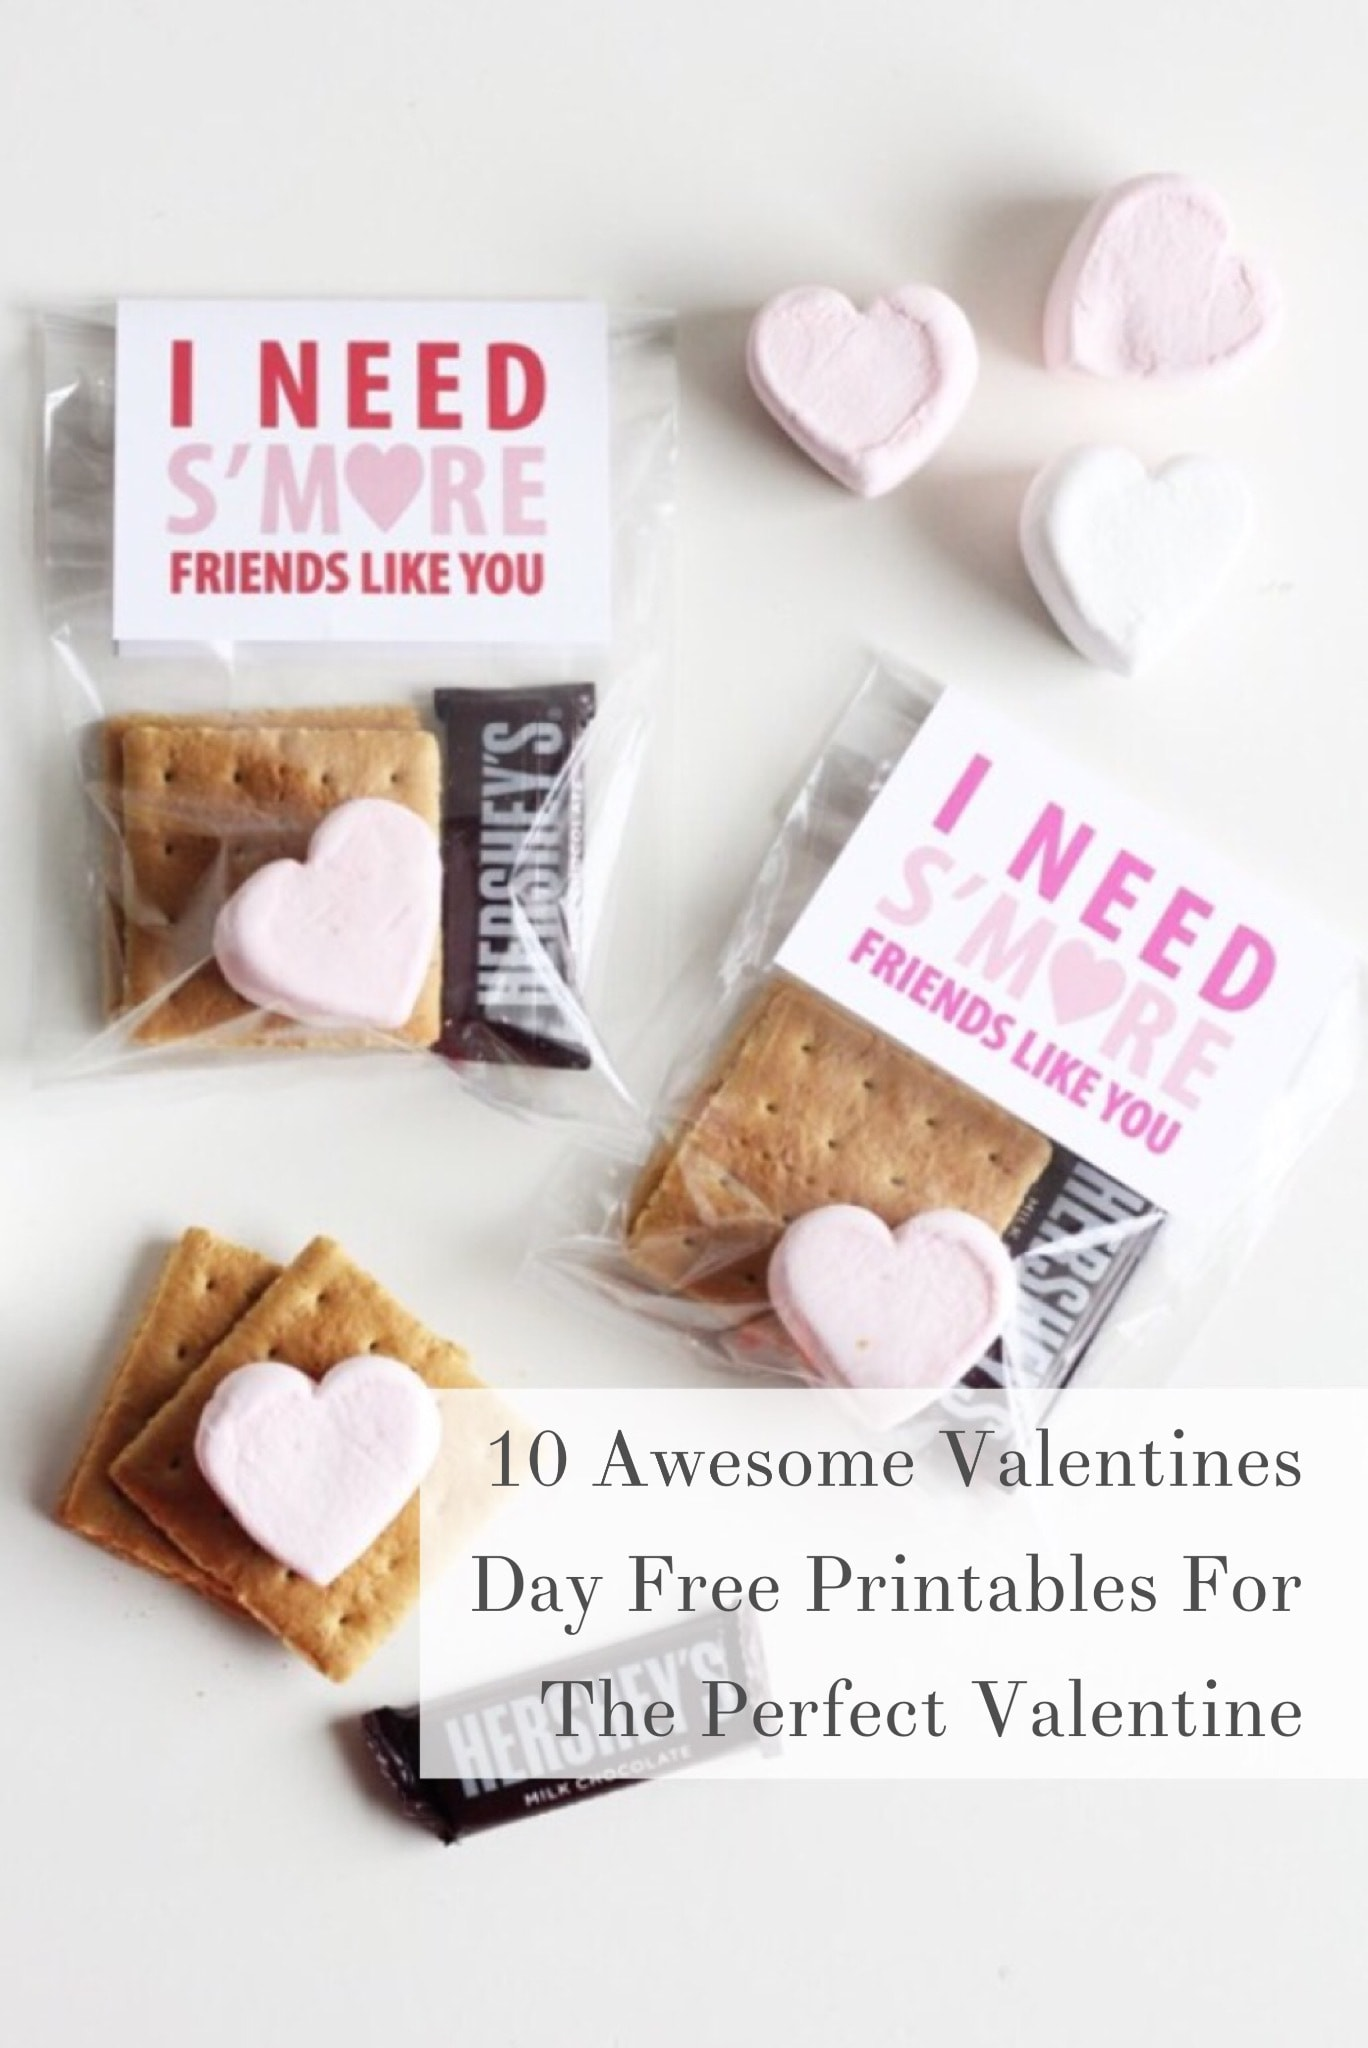 10 Awesome Valentine's Day Free Printables For The Perfect Valentine